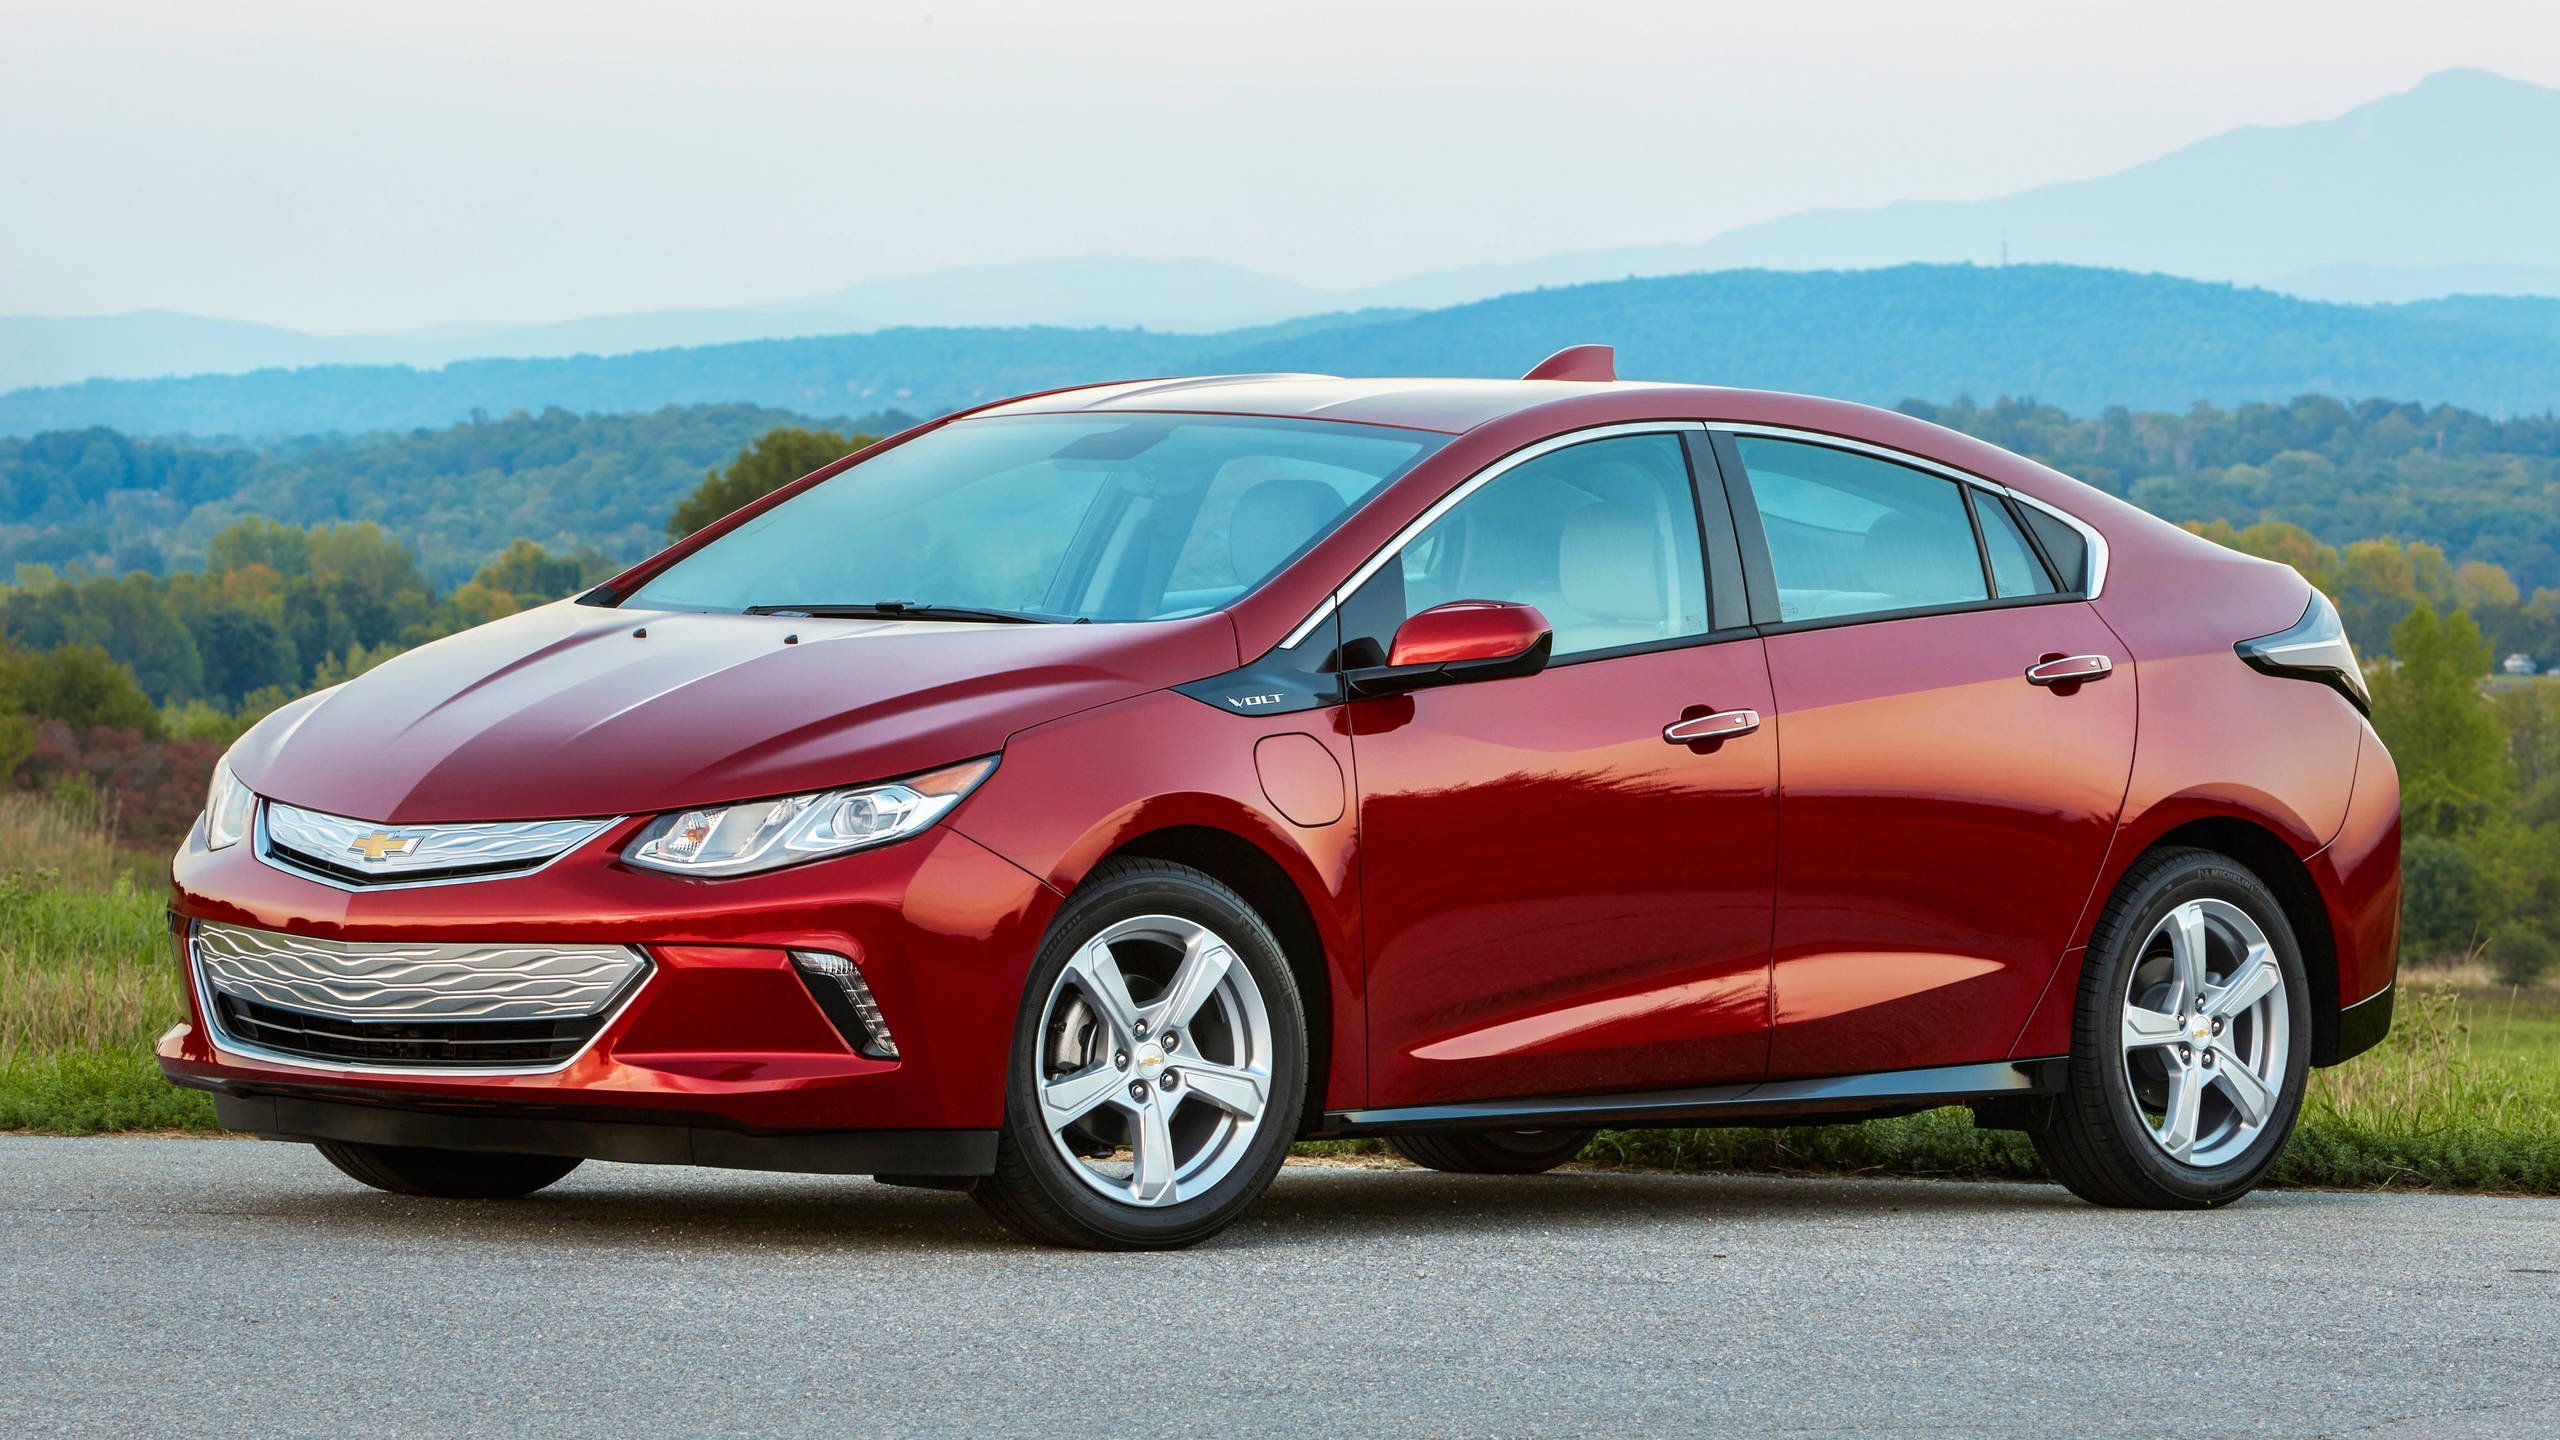 What Killed The Chevrolet Volt? 6 Plausible Factors (And A 2022 Chevy Volt Transmission, Tires, Used